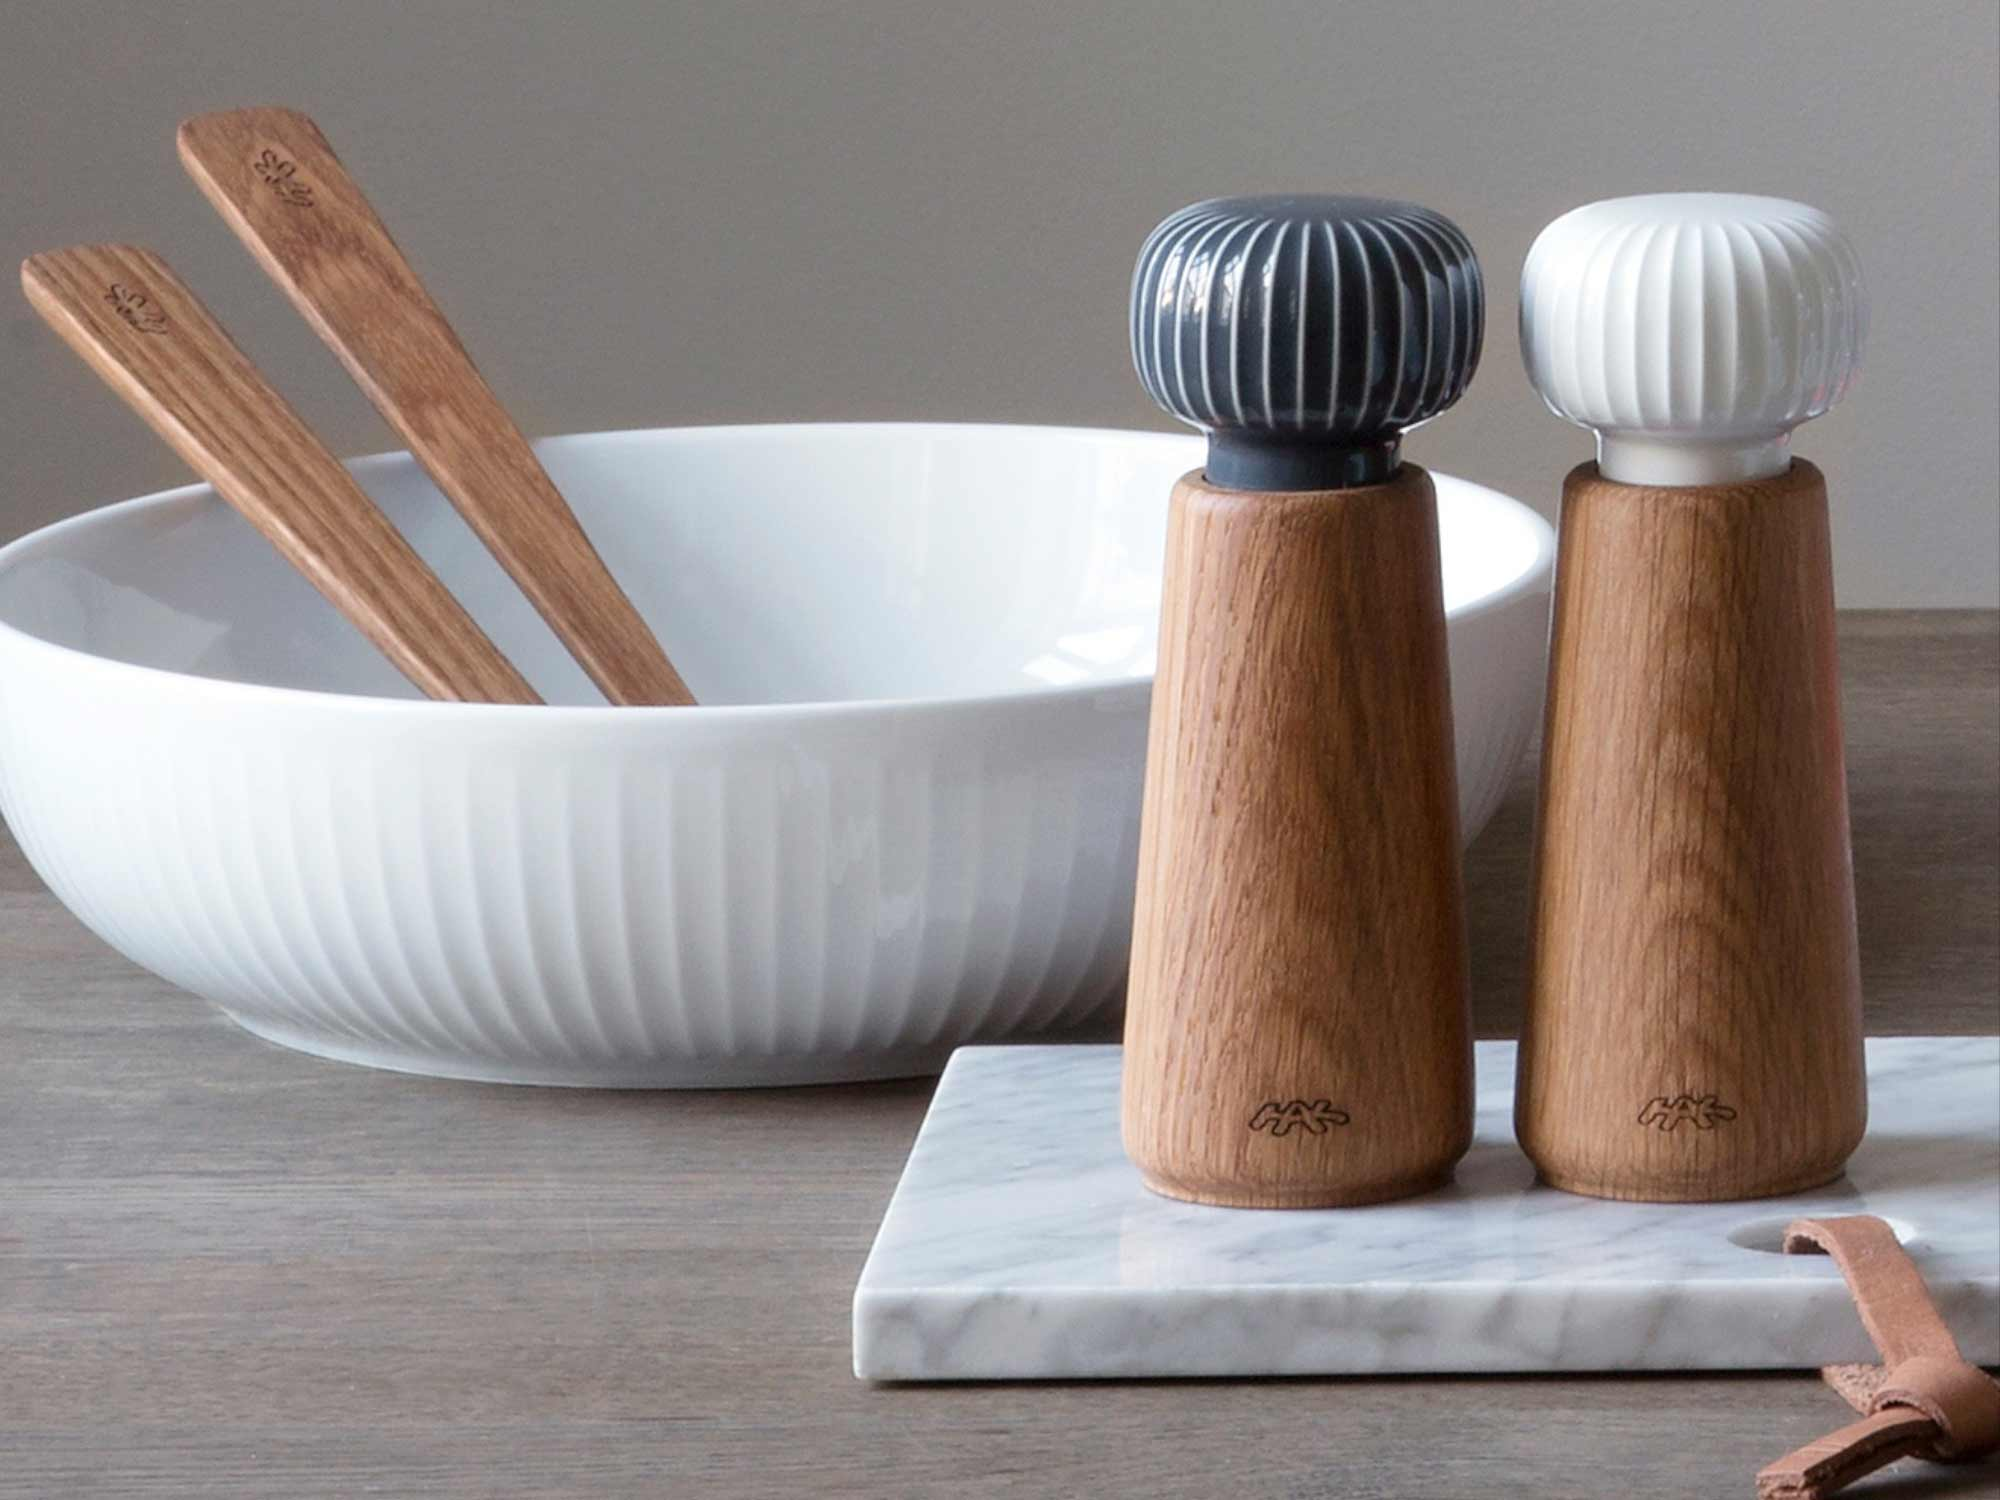 8 Mod Kitchen Accessories to Fulfill Your Danish Design Desires